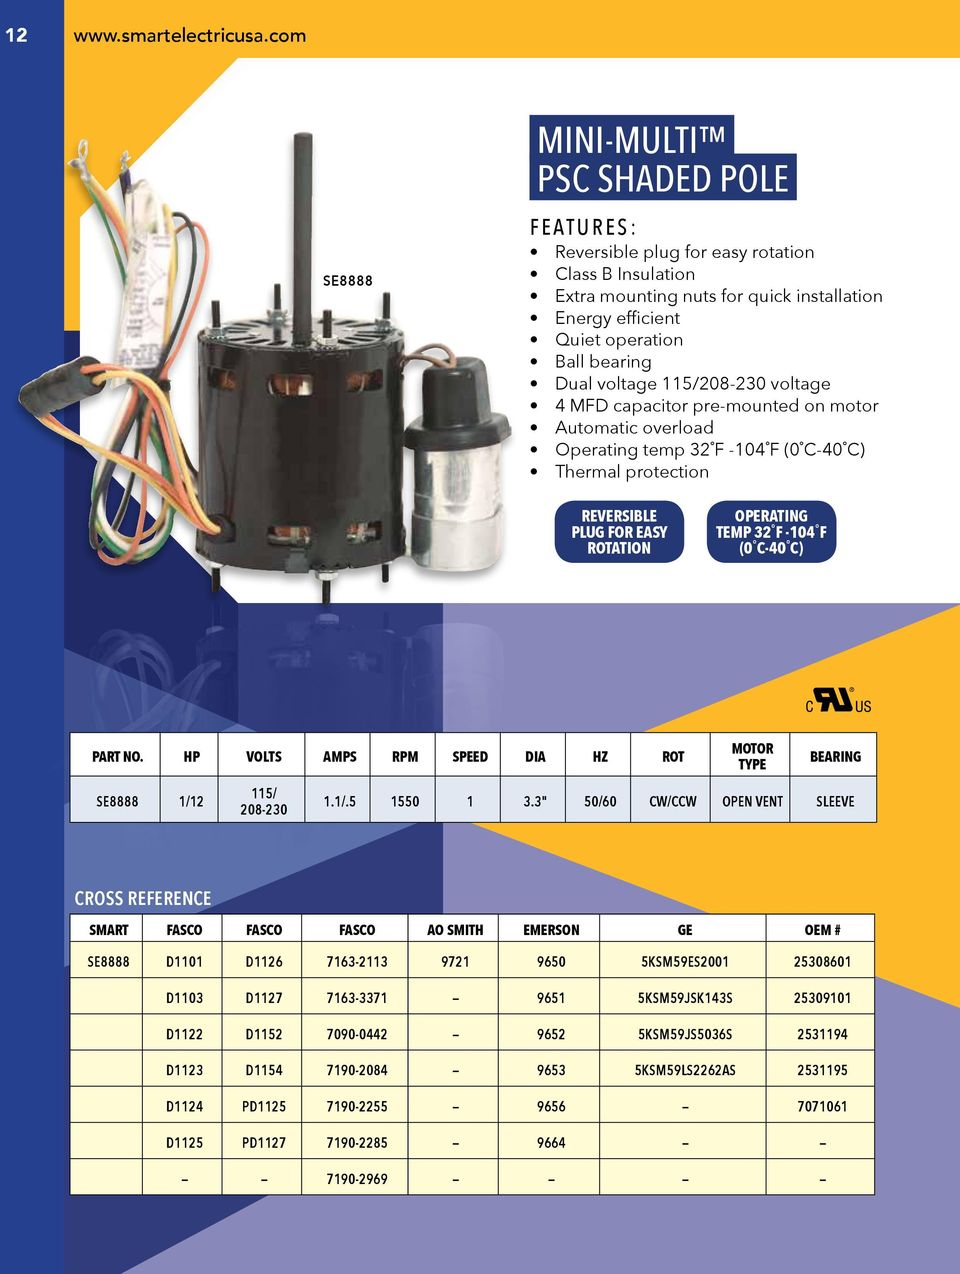 Smart Electric Product Catalog Toll Free Pdf 40 Mfd Capacitor Ac Motor Wiring Diagram 115 208 230 Voltage 4 Pre Mounted On Automatic Overload